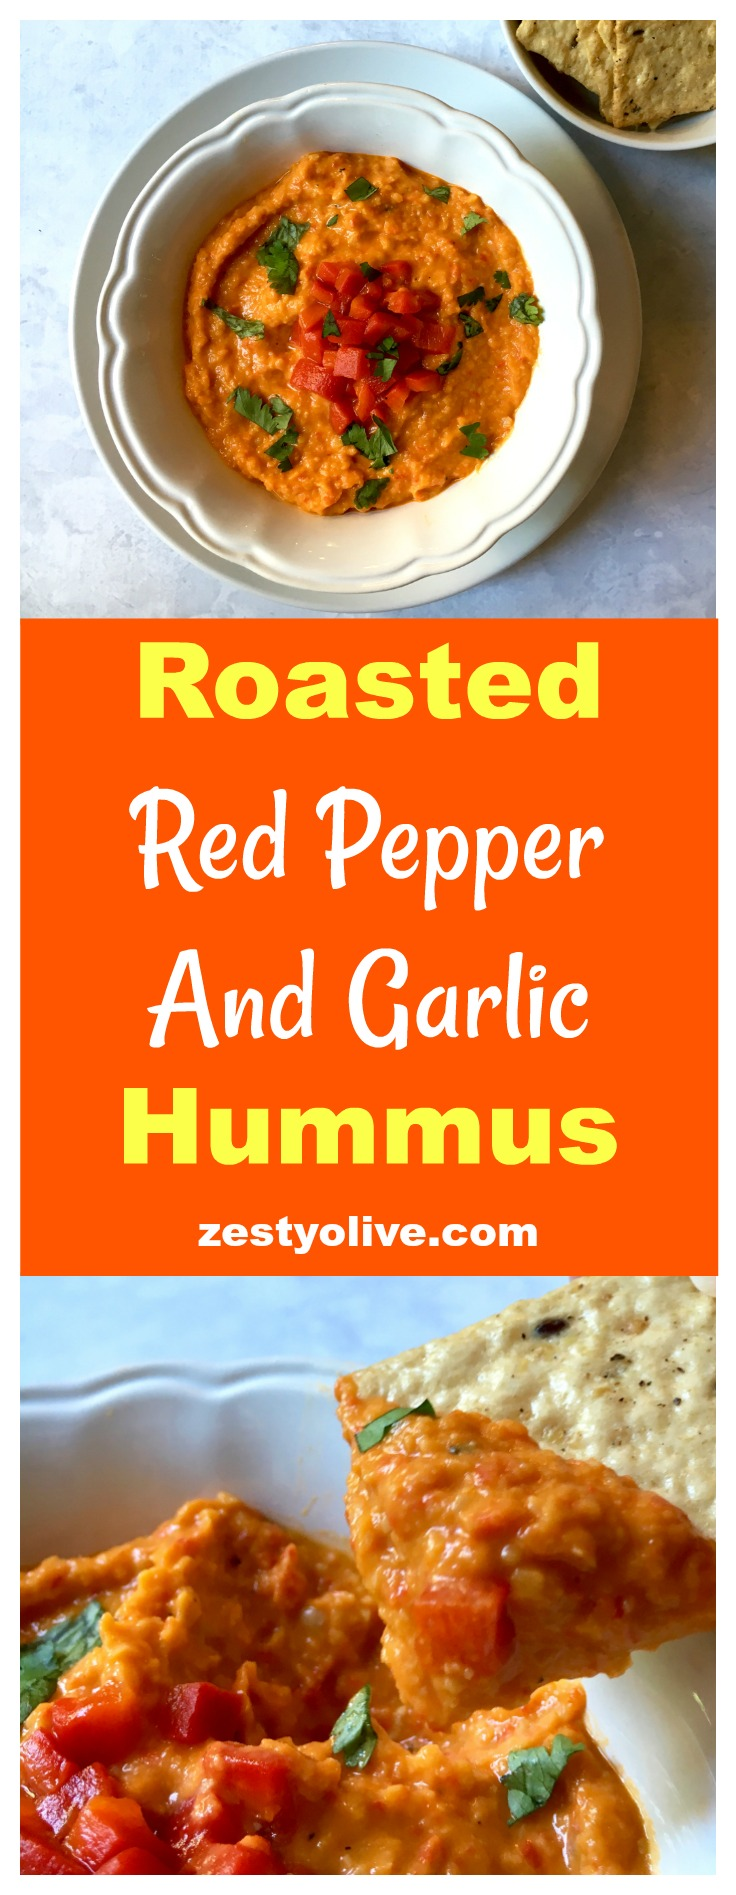 Roasted Red Pepper And Garlic Hummus - a quick and easy appetizer dip for hummus lovers!